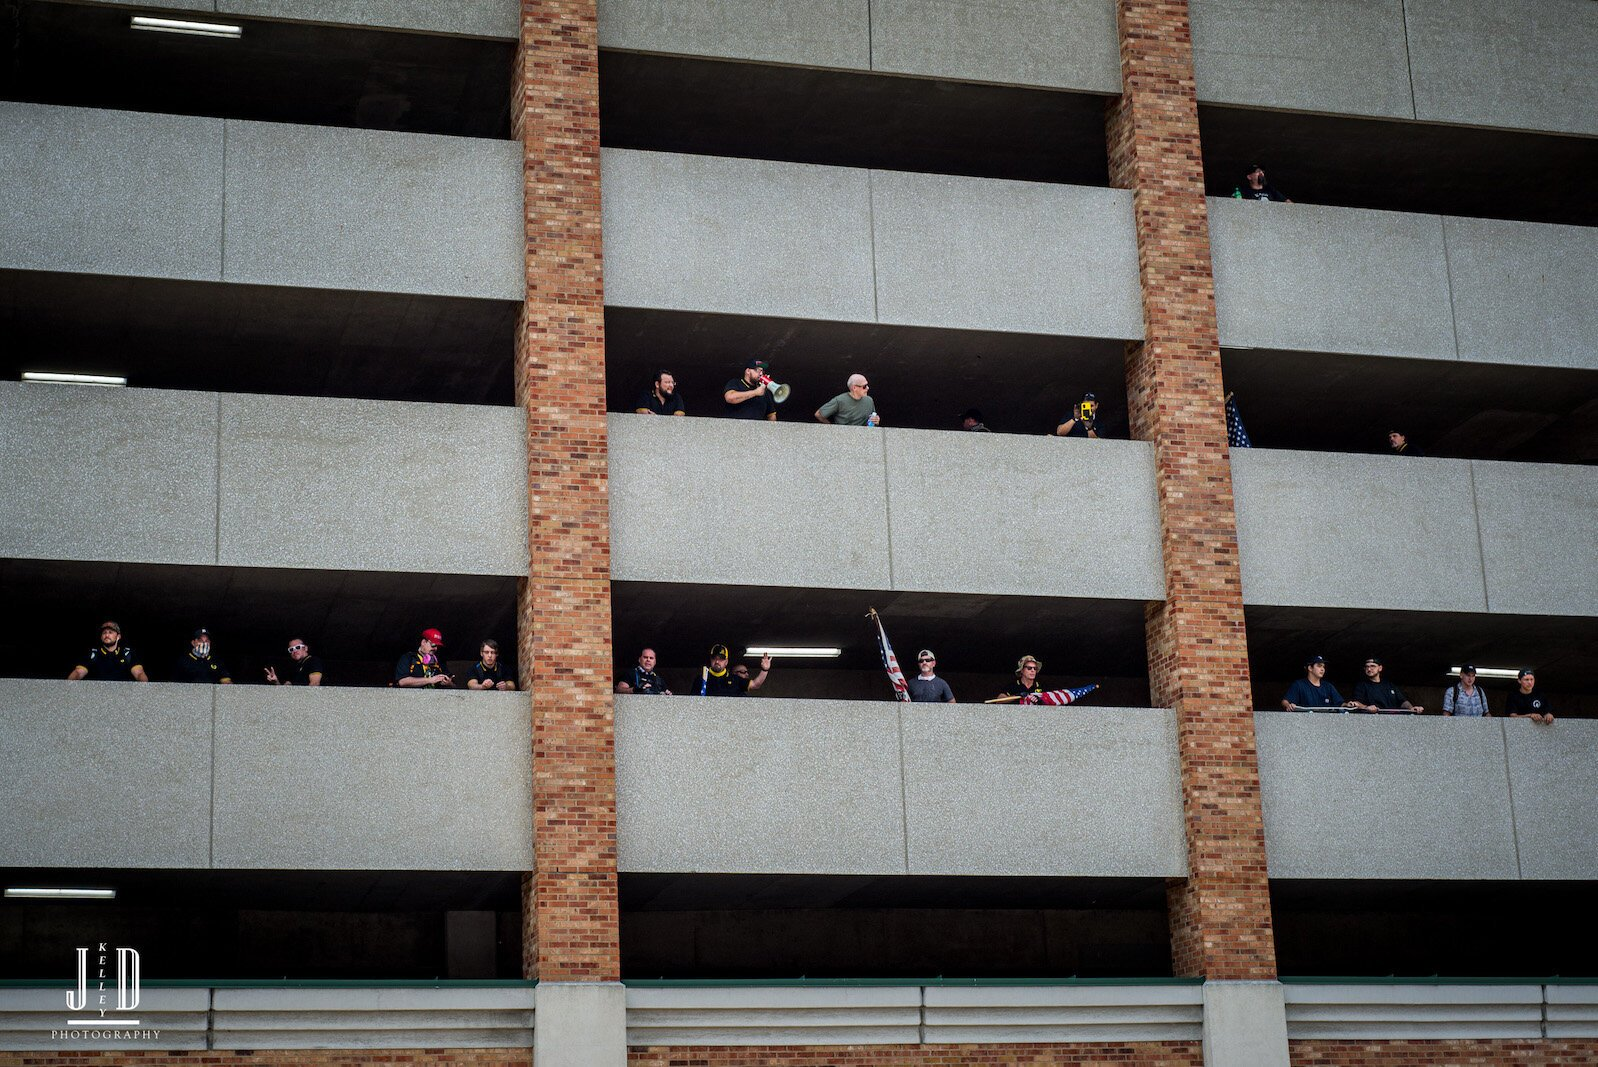 Proud Boys retreated to the Radisson Parking ramp after counter-protestors blocked them from entering the Arcadia Festival Site.